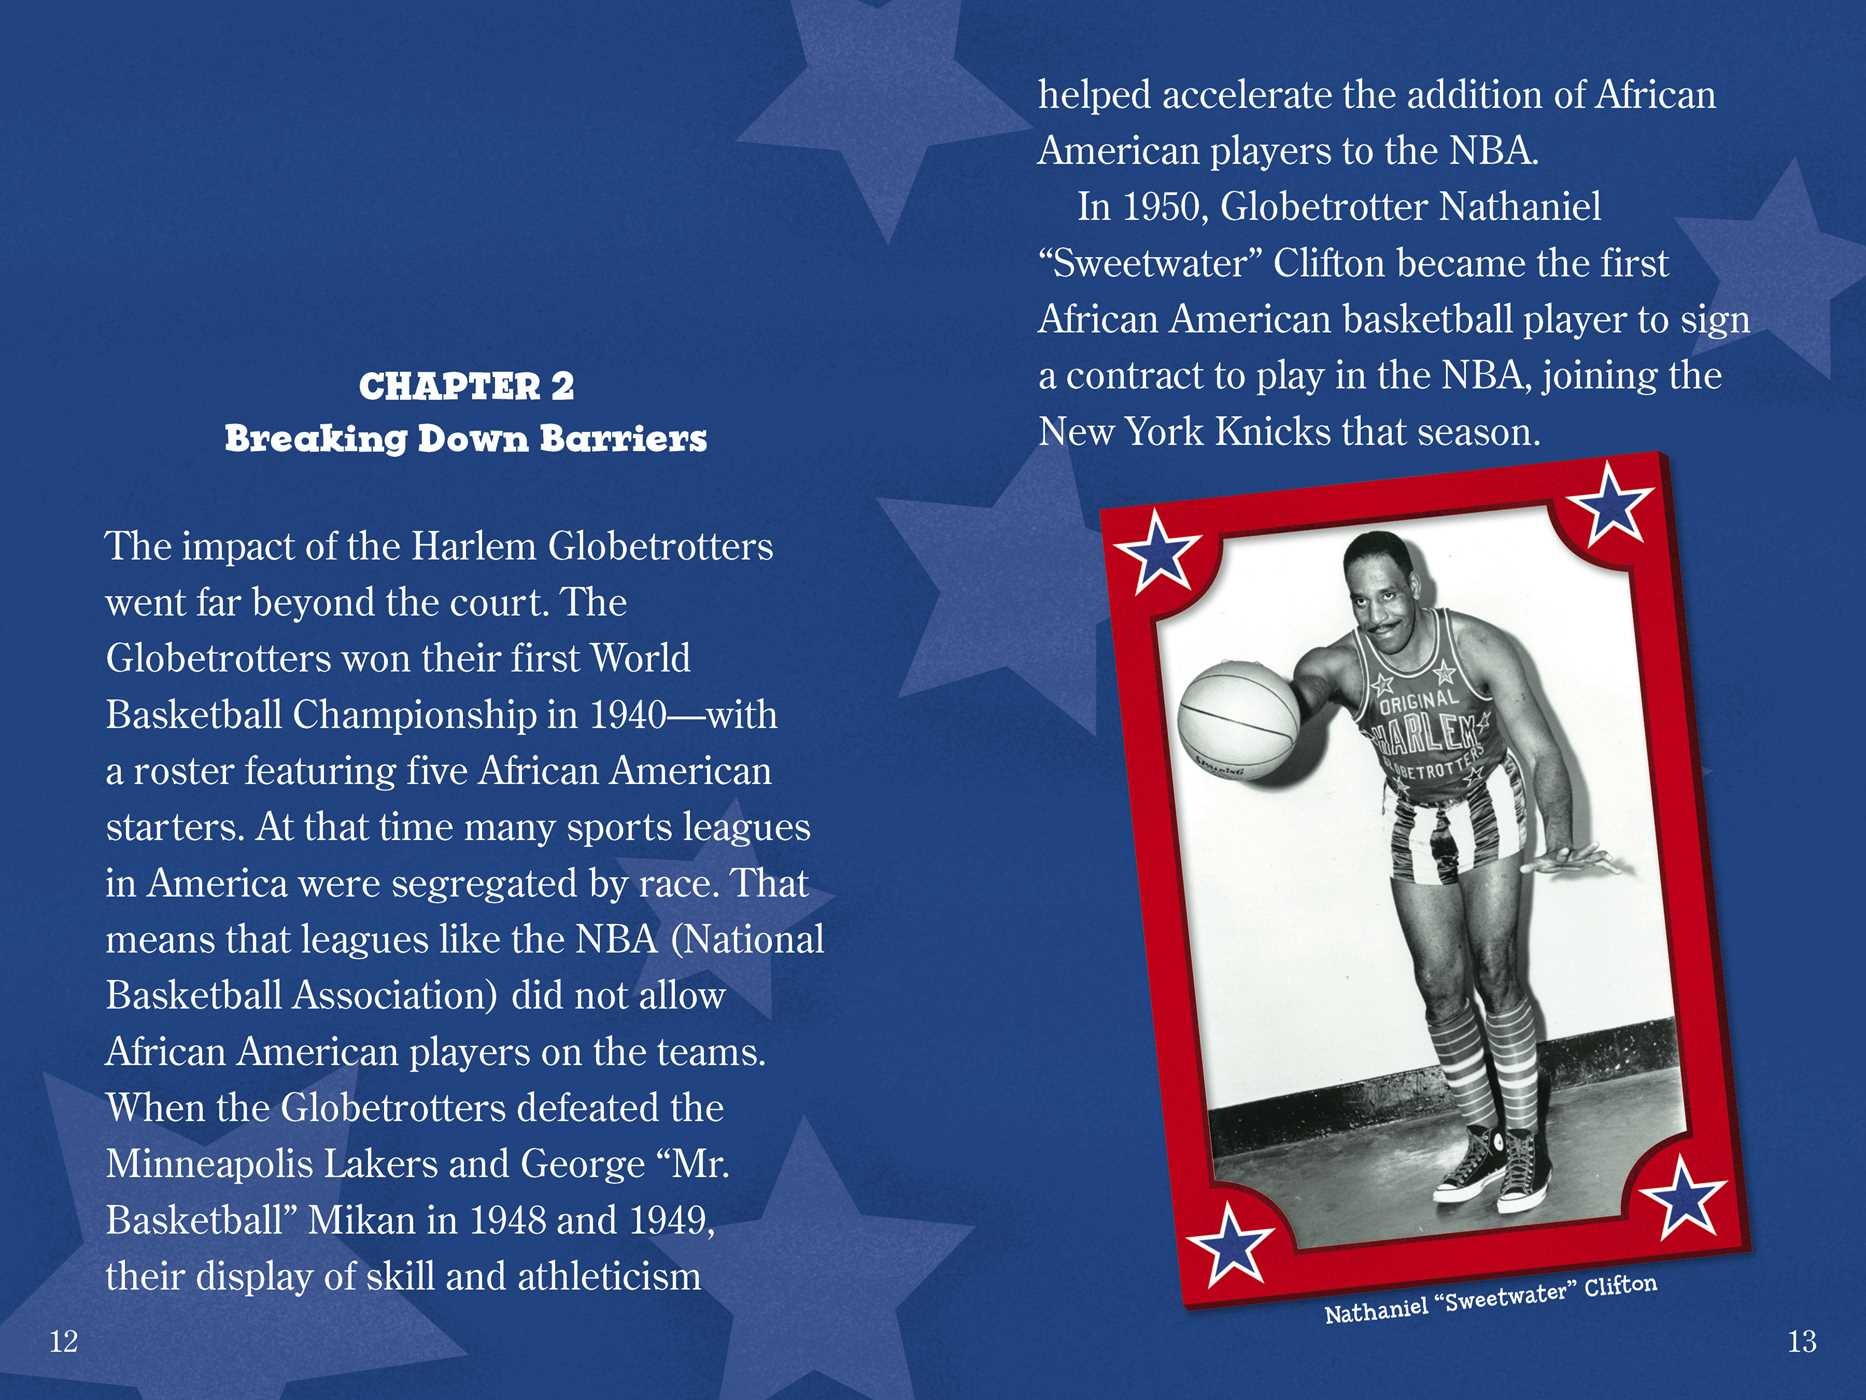 The superstar story of the harlem globetrotters 9781481487481.in04